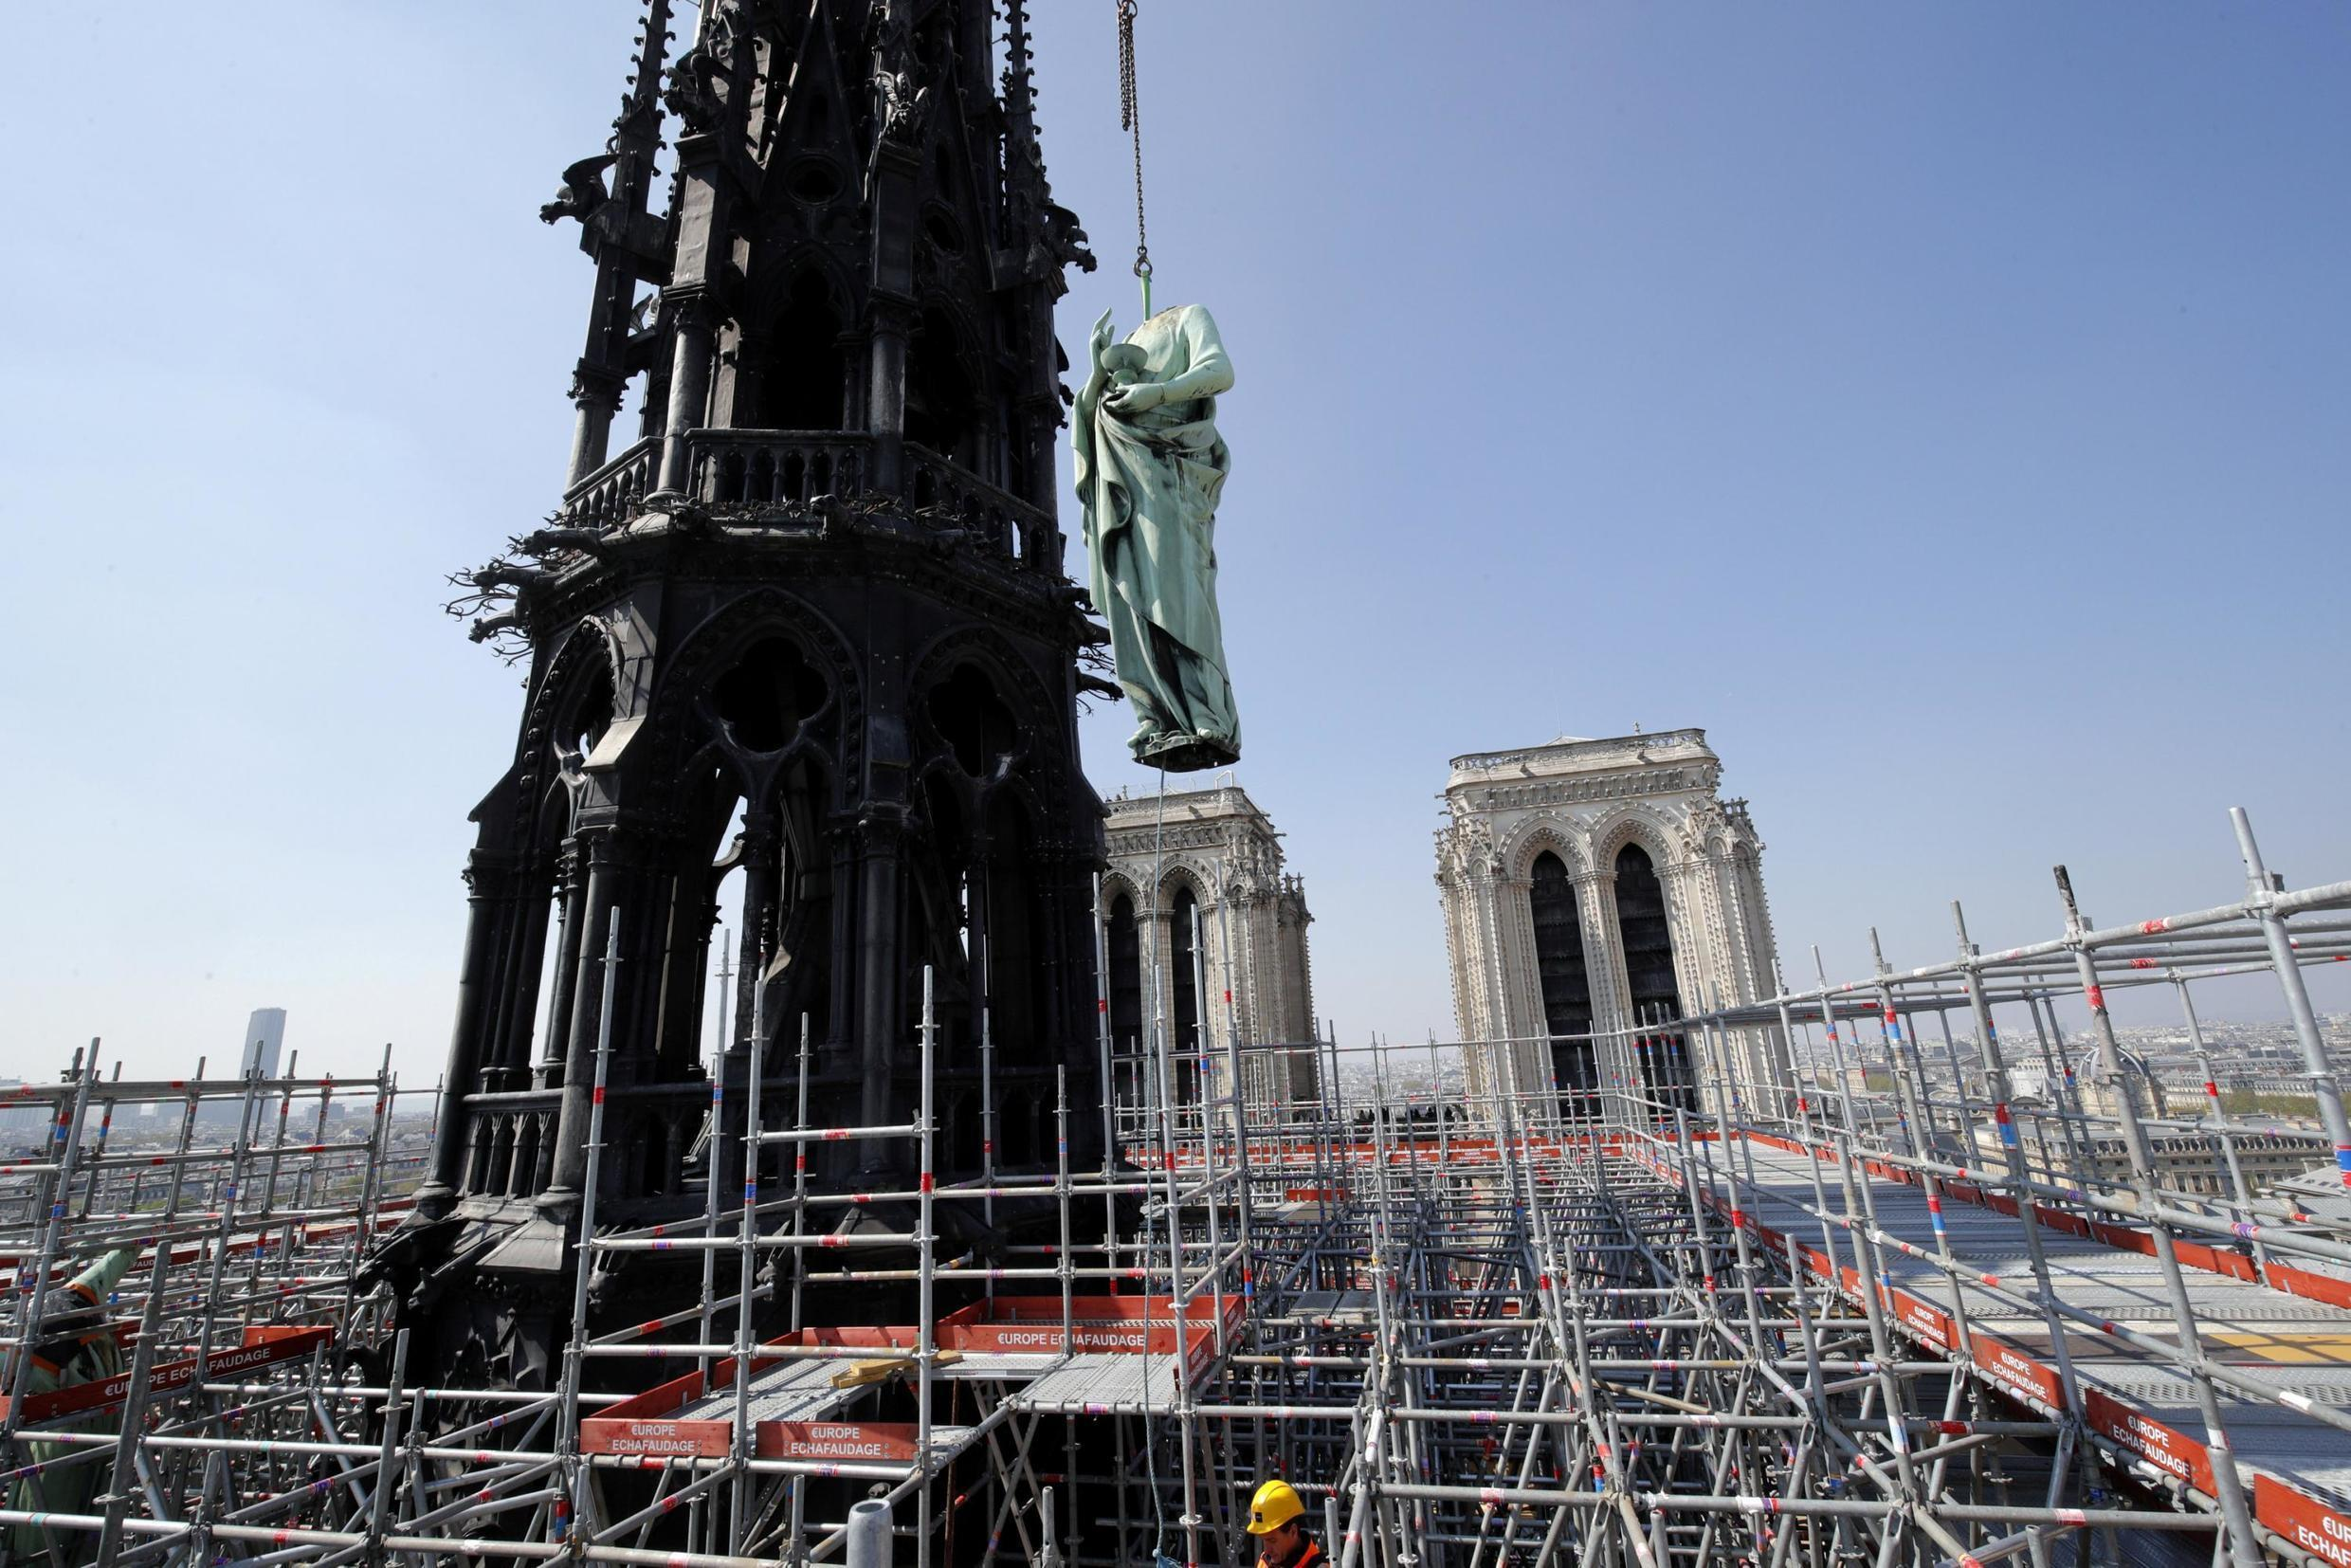 A view of Notre-Dame after the fire on April 15, 2019.